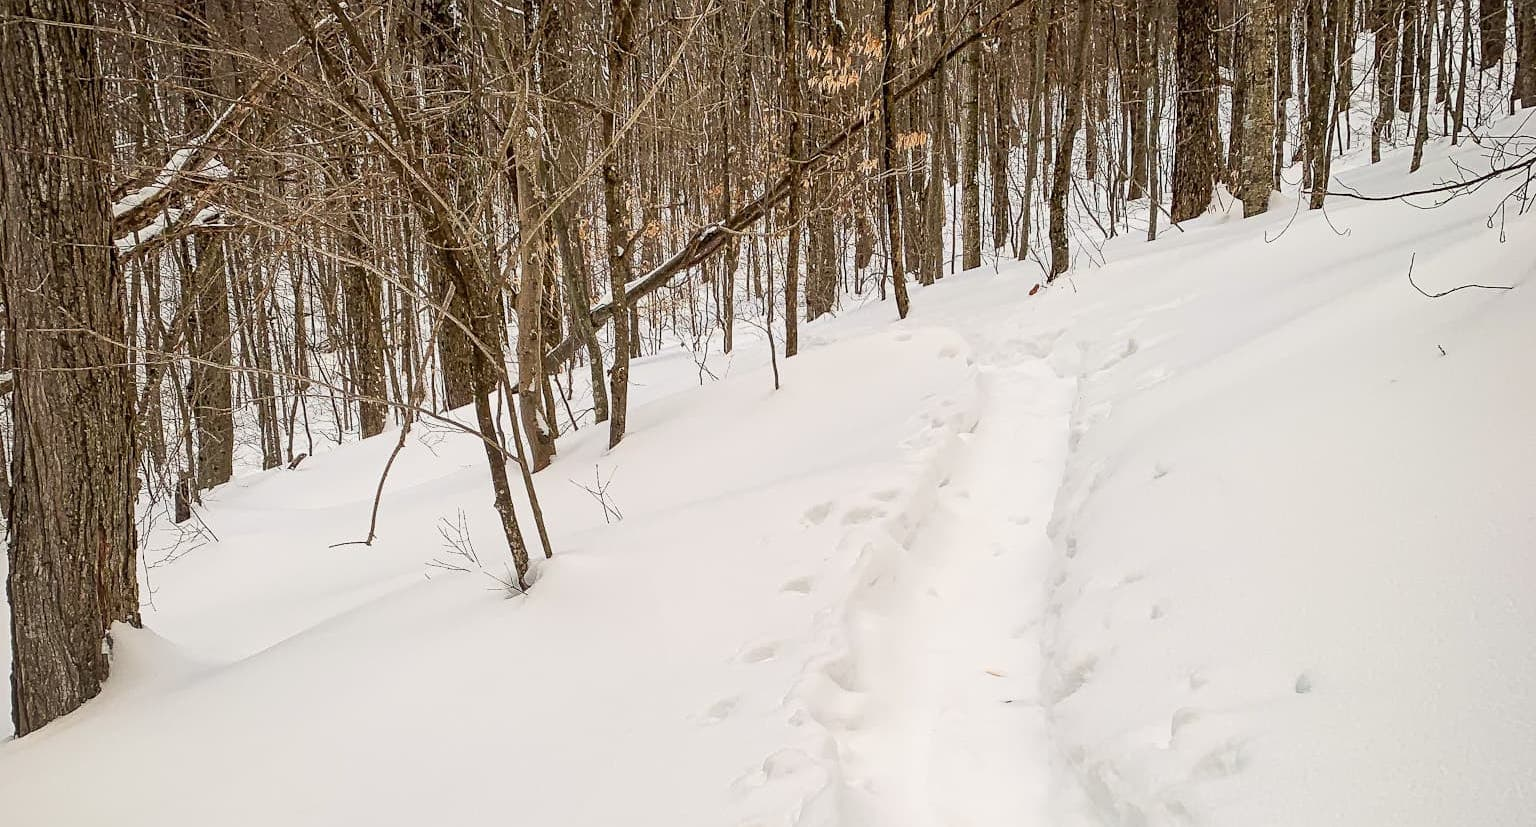 snowshoe trench in snow